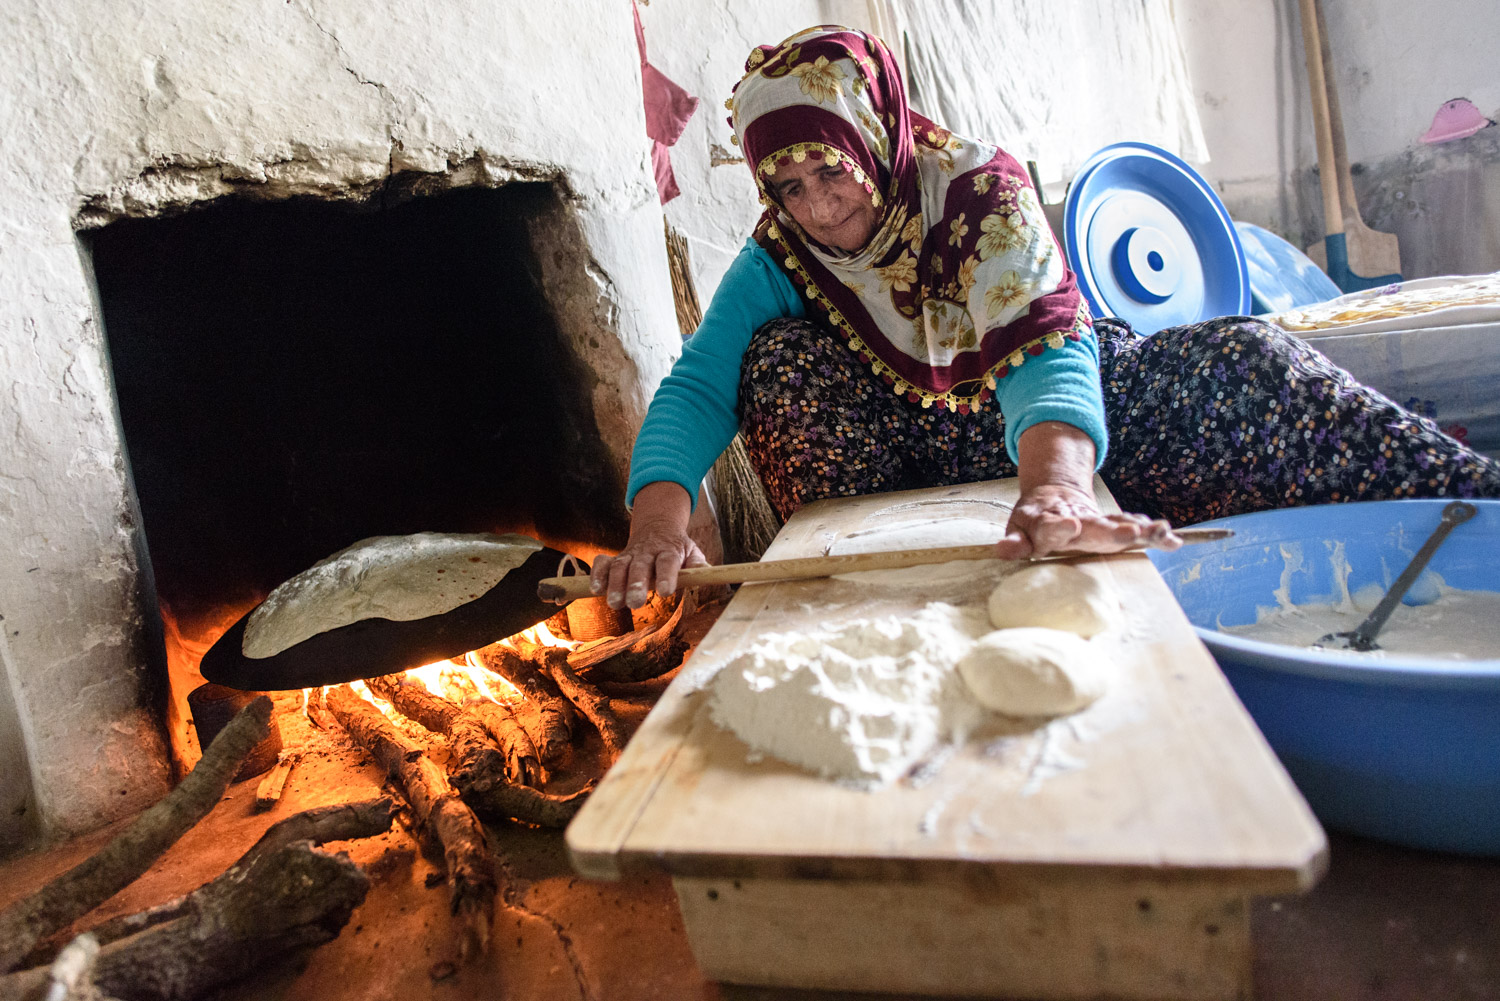 Baking traditional bread over a fire in a home in the Munzur Valley. This batch of bread will be sent to family members living in Istanbul.